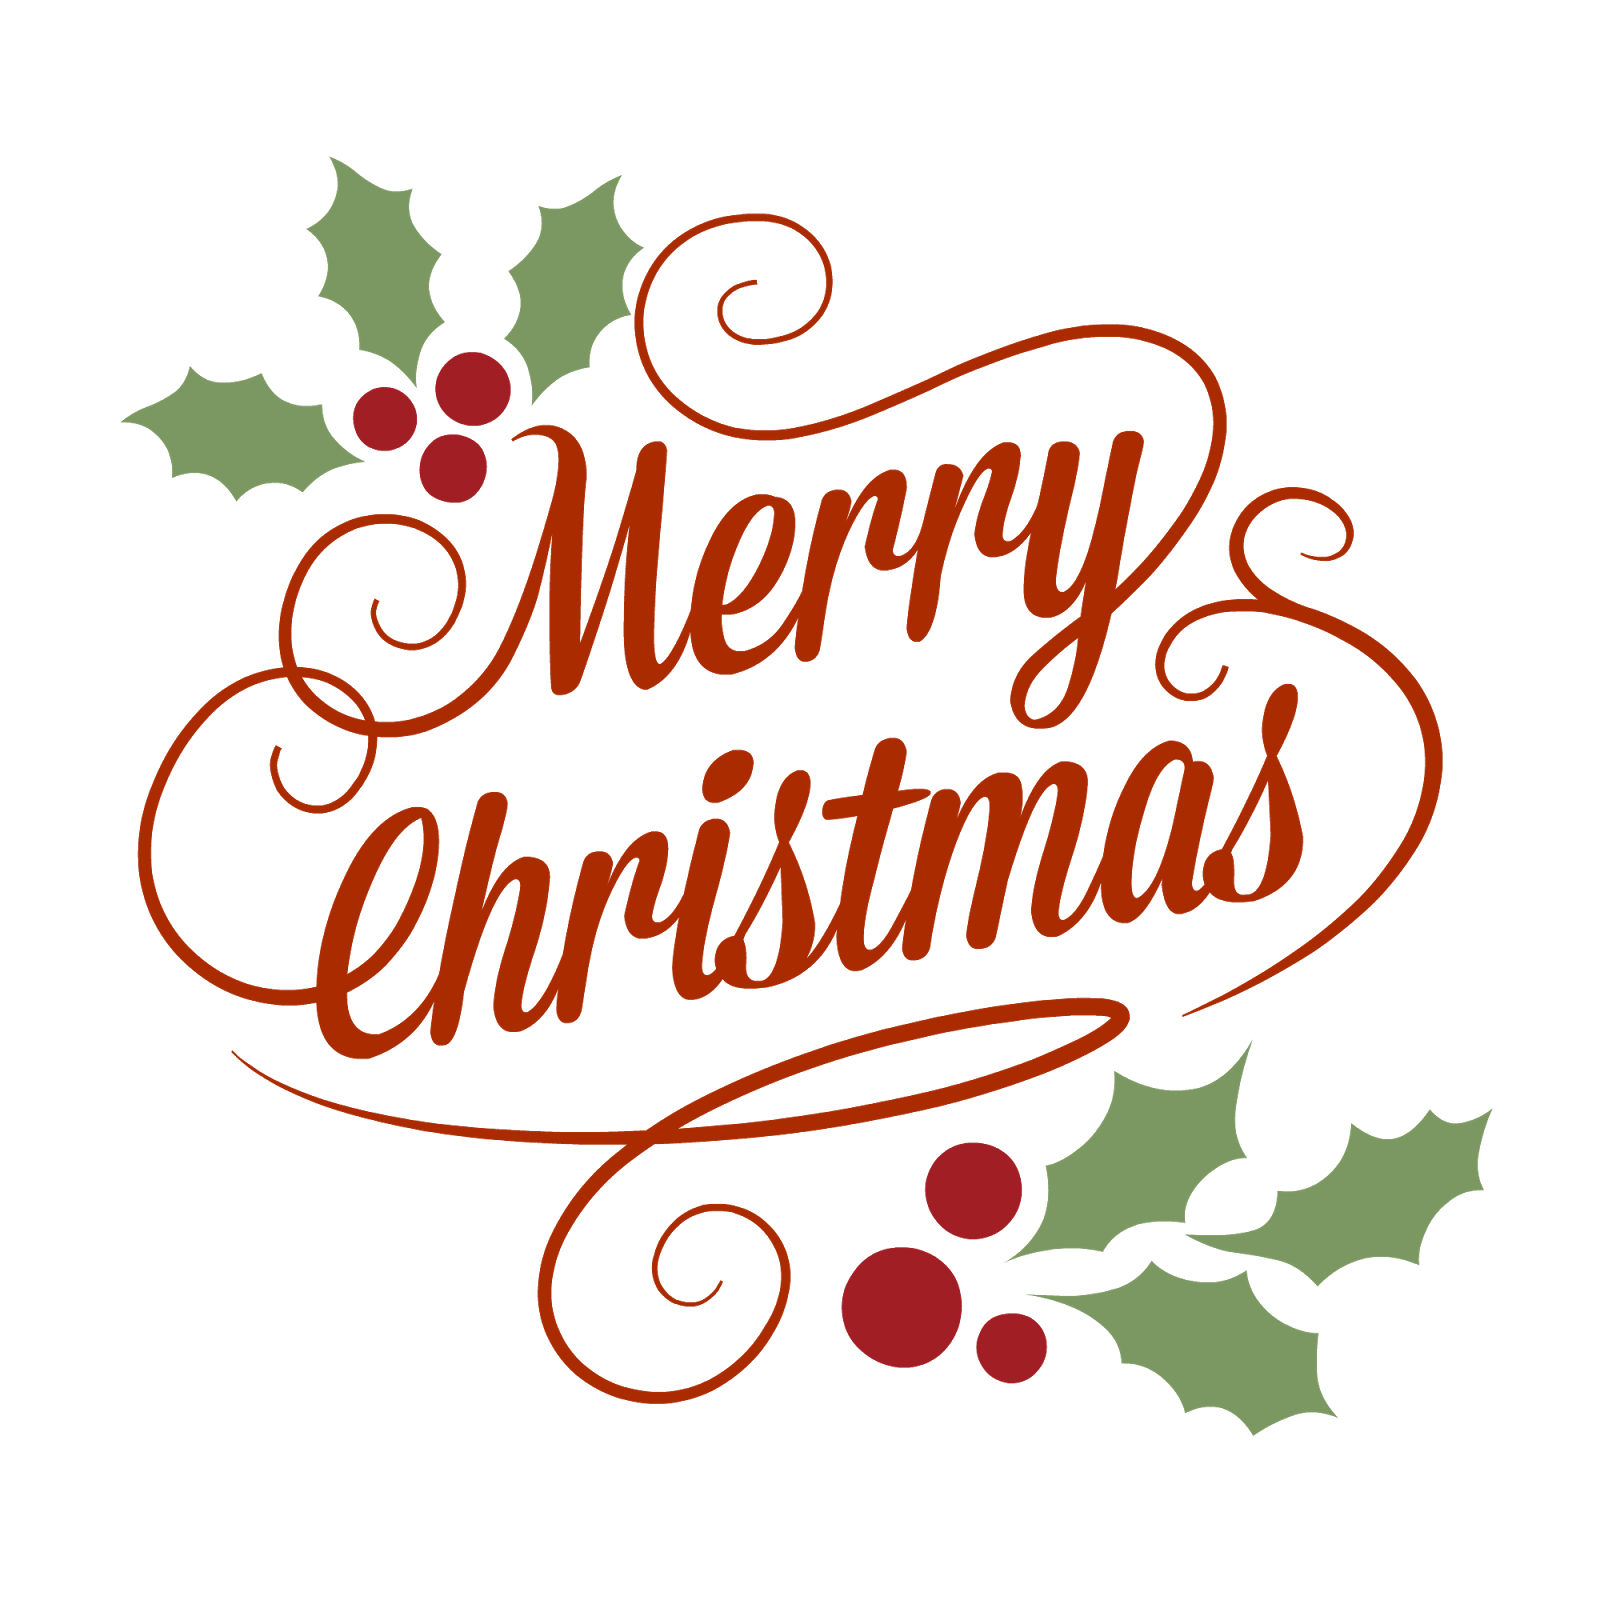 1600x1600 Merry Christmas Classical Vintage Sign Transparent Png